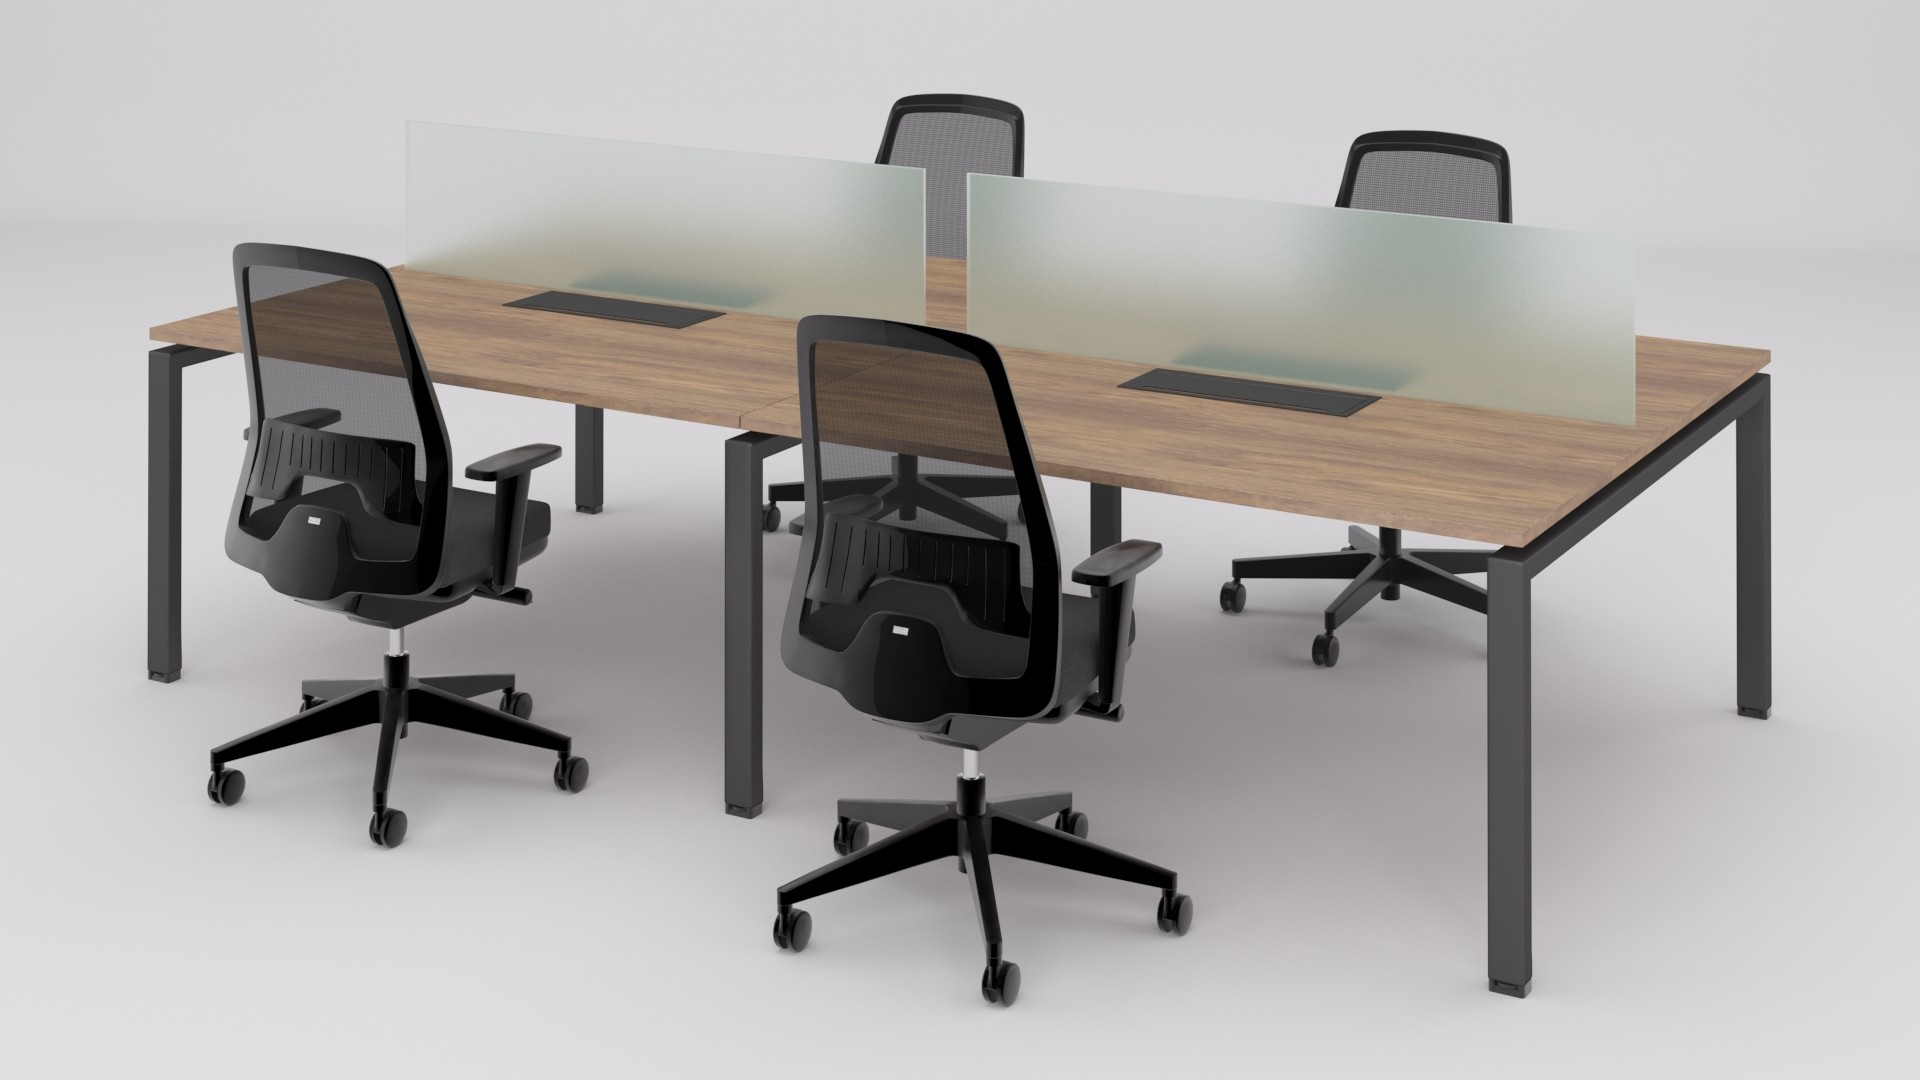 Muebles Office : Muebles de oficina open office